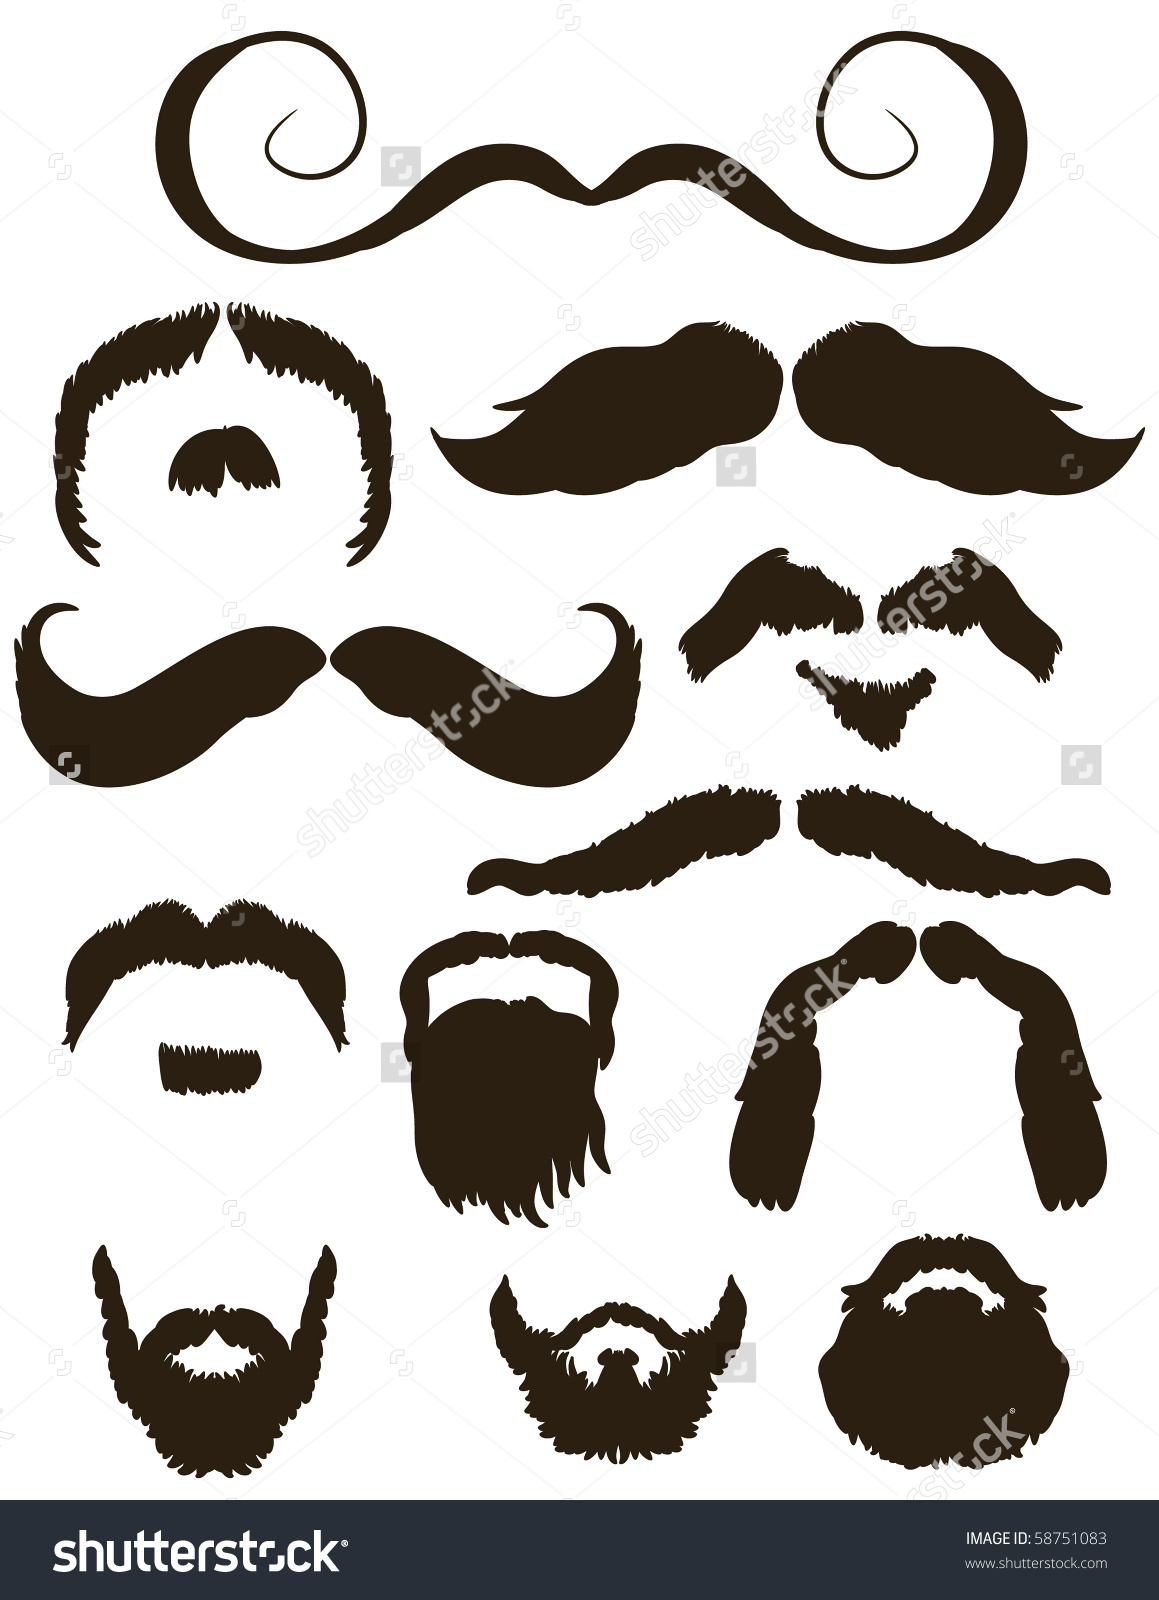 Set Mustache Beard Silhouettes No Shave Stock Vector 58751083.